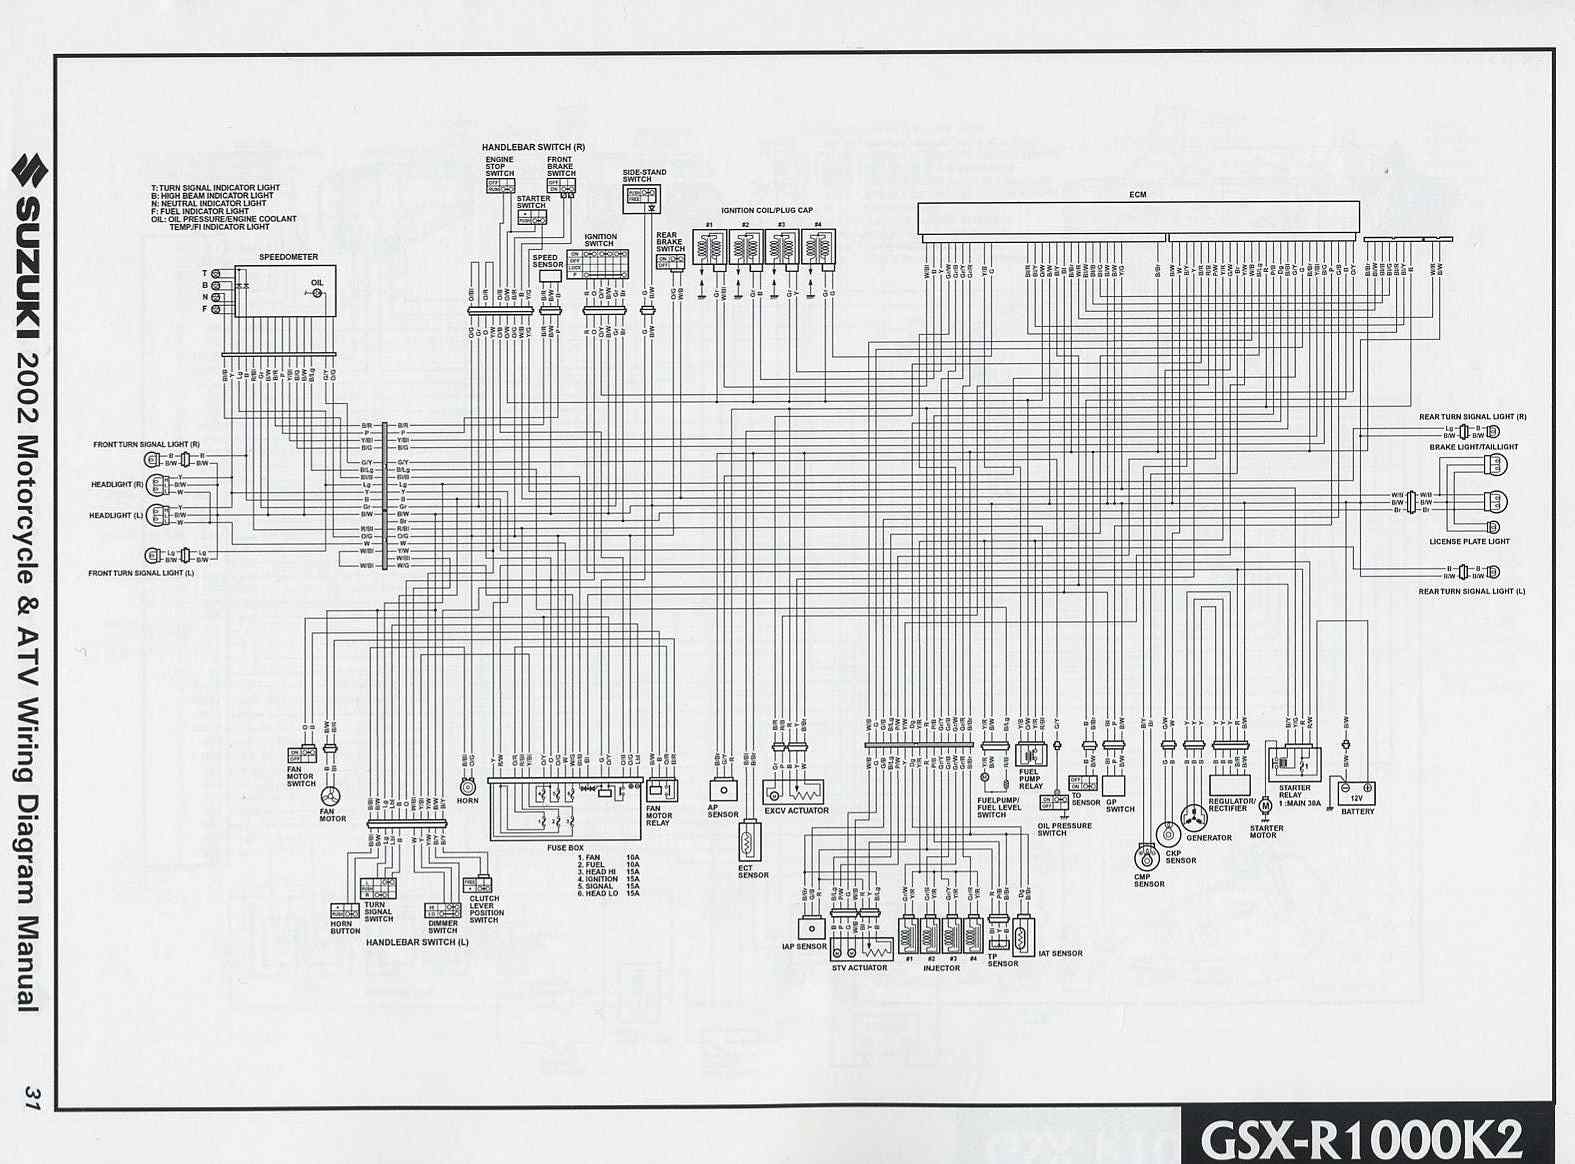 Wiring Diagram 2004 Cbr1000rr - wiring data